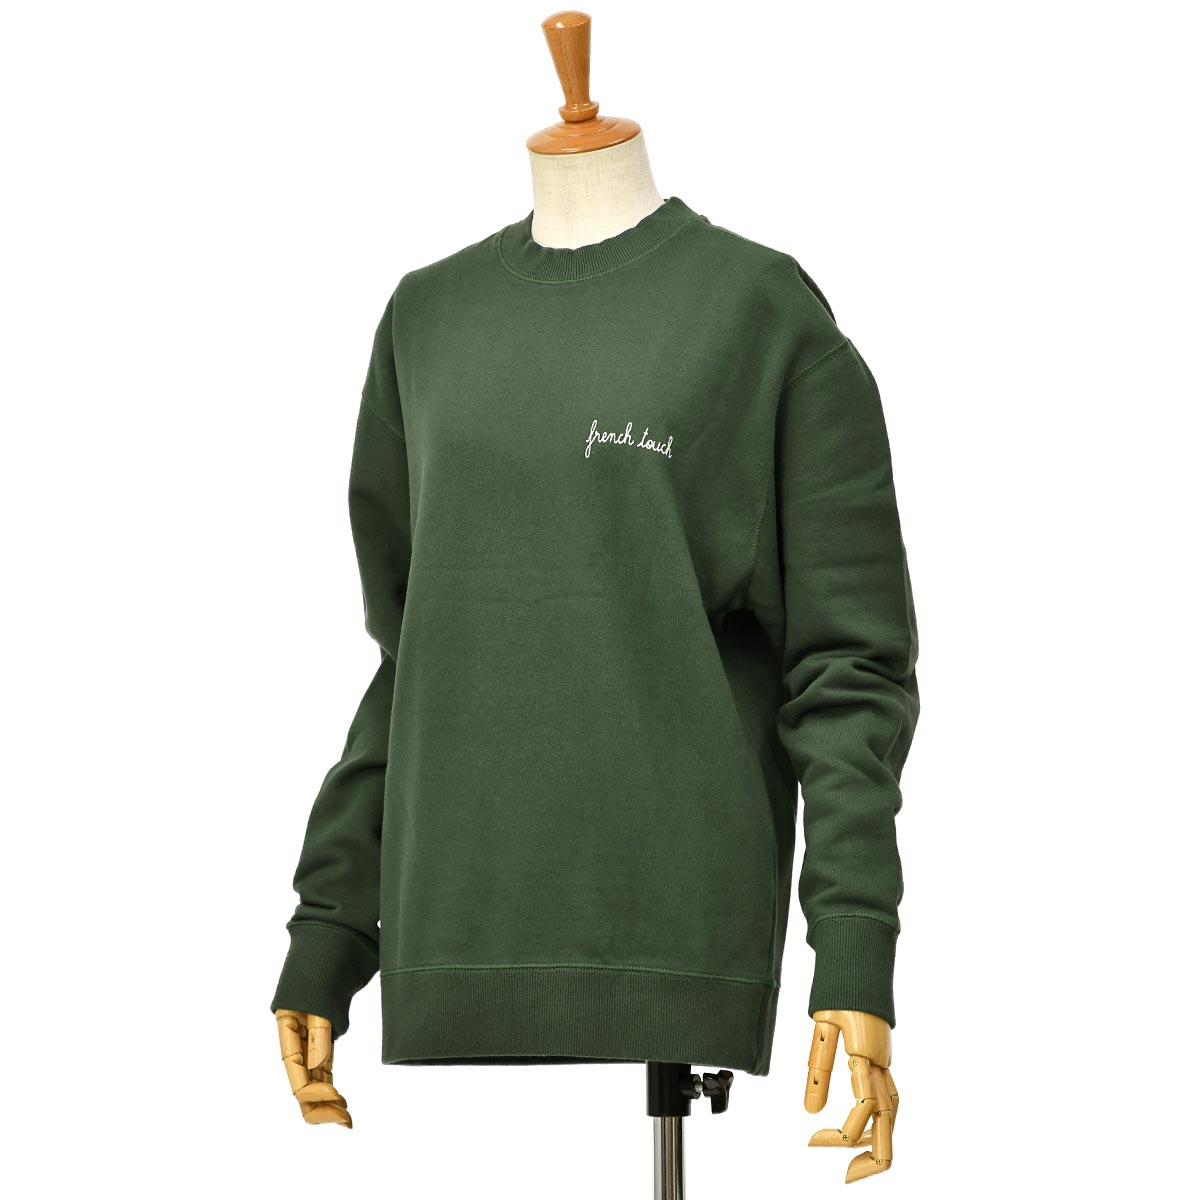 Maison Labiche【メゾン ラビッシュ】スウェット FRENCH TOUCH IMPERIAL GREEN コットン グリーン